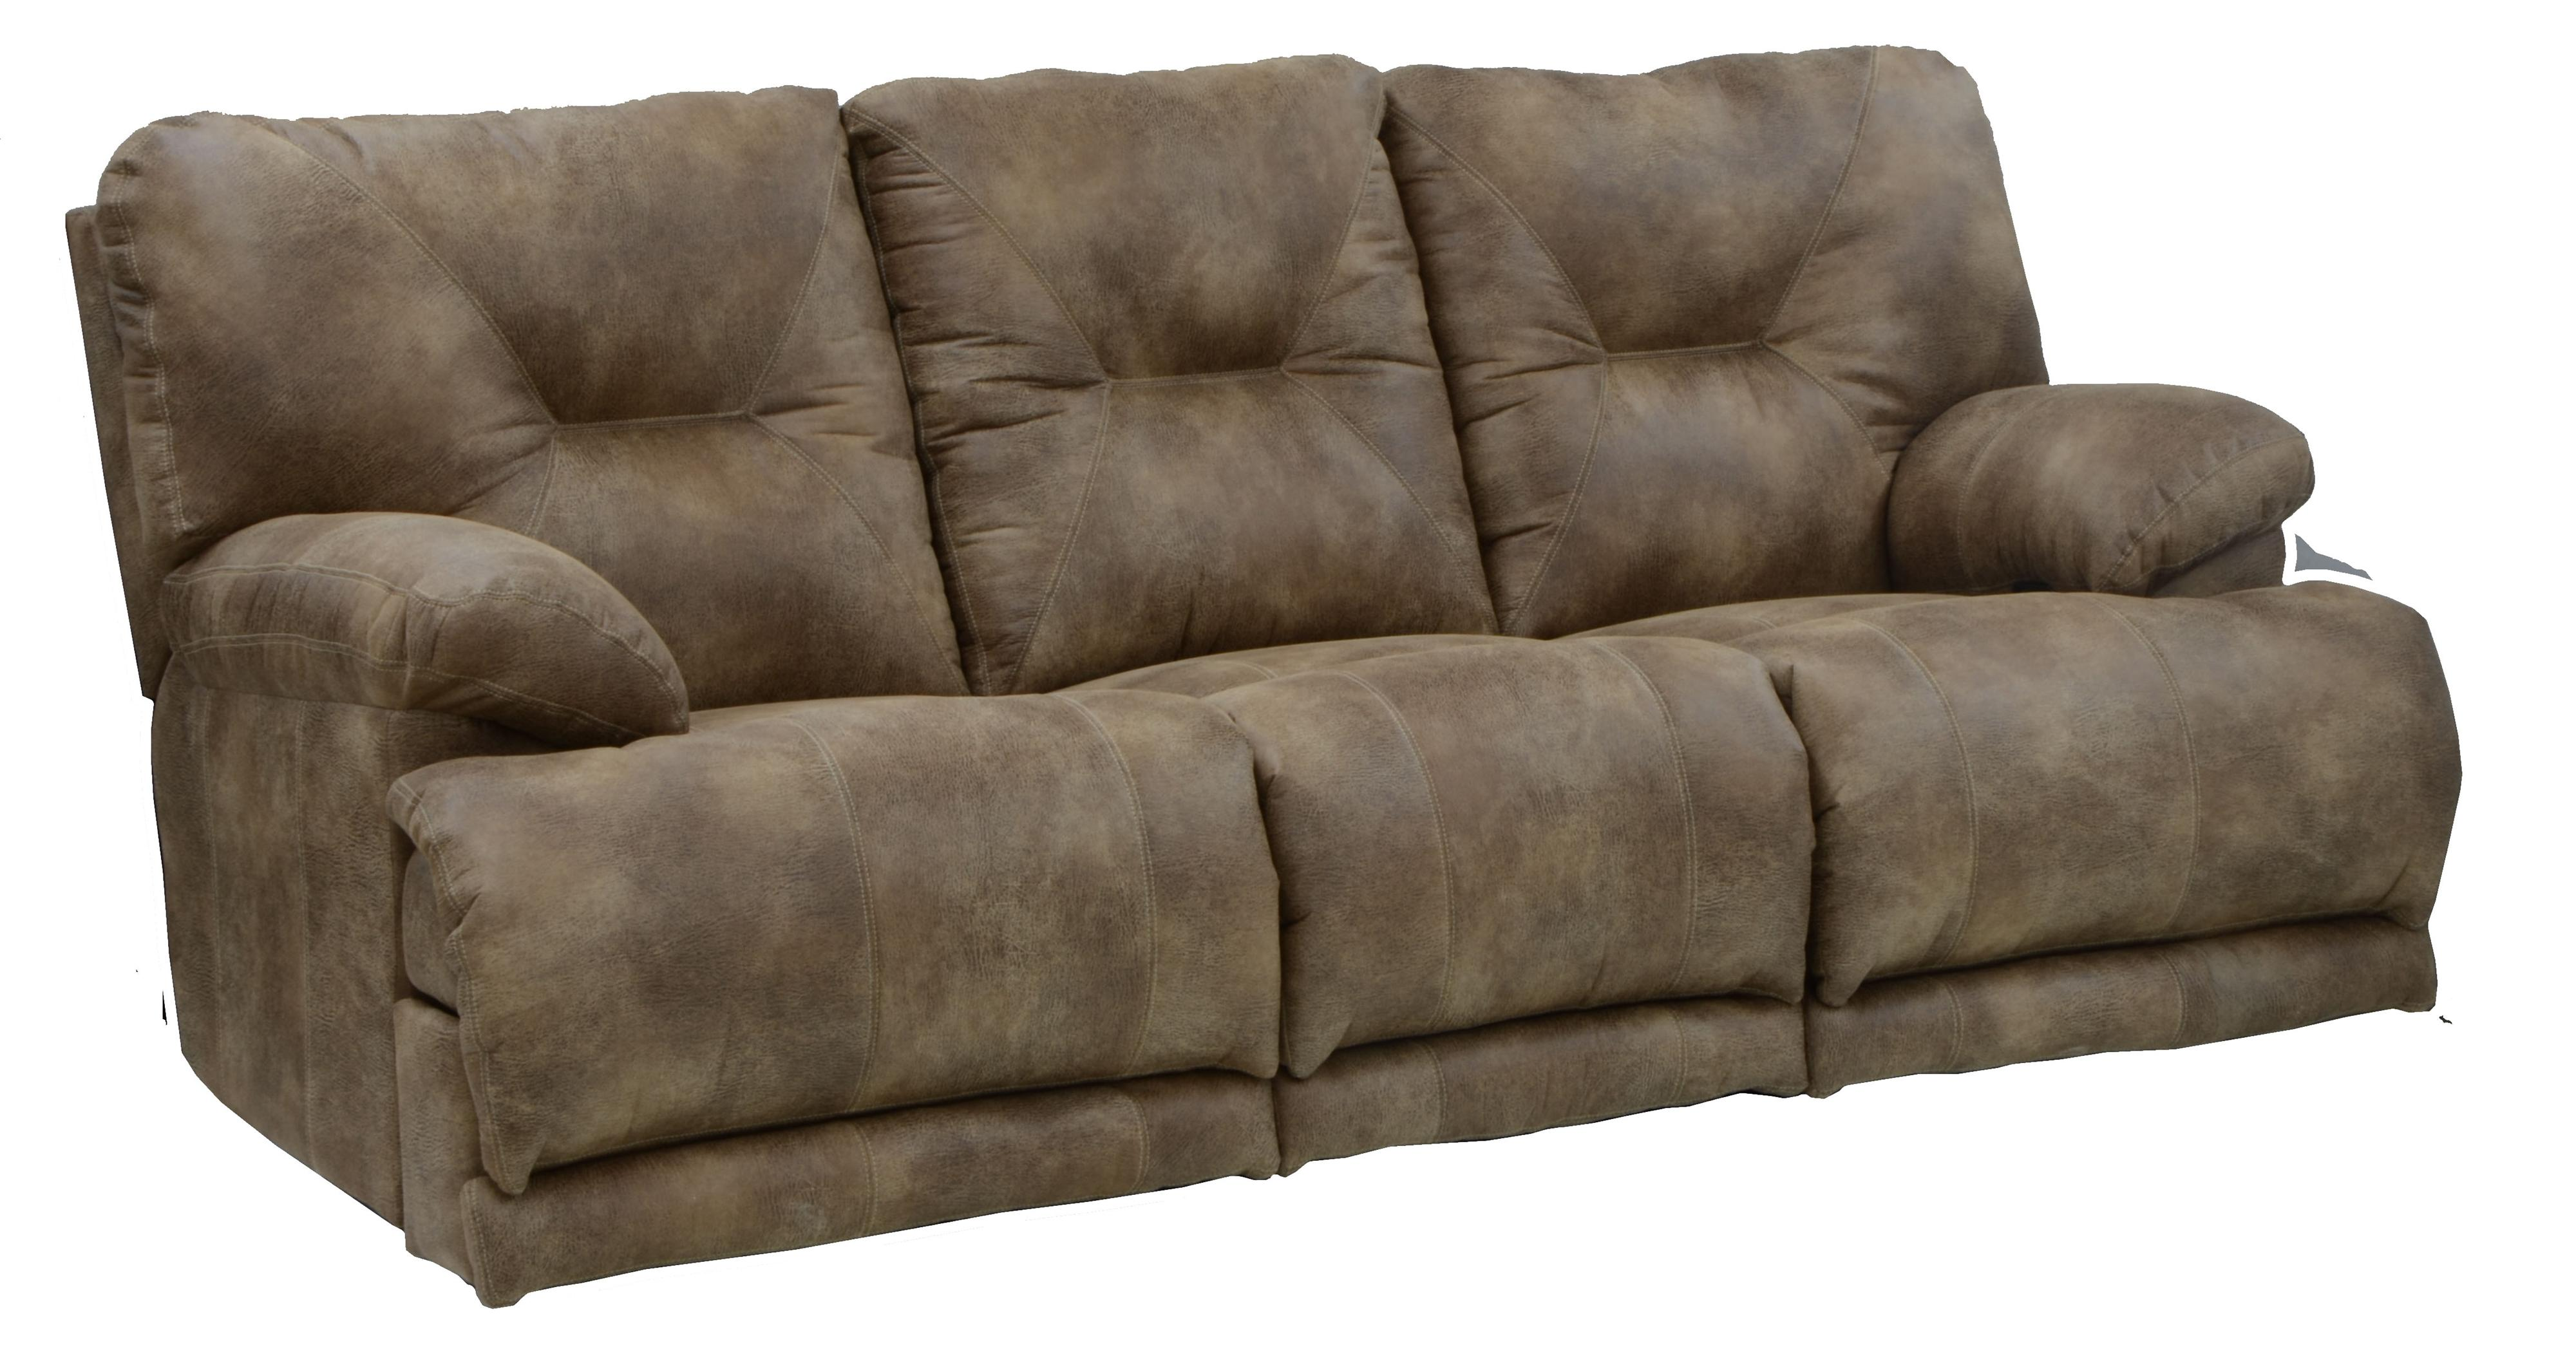 Power 3 seat lay flat reclining sofa by catnapper wolf - Sofa reclinable ...